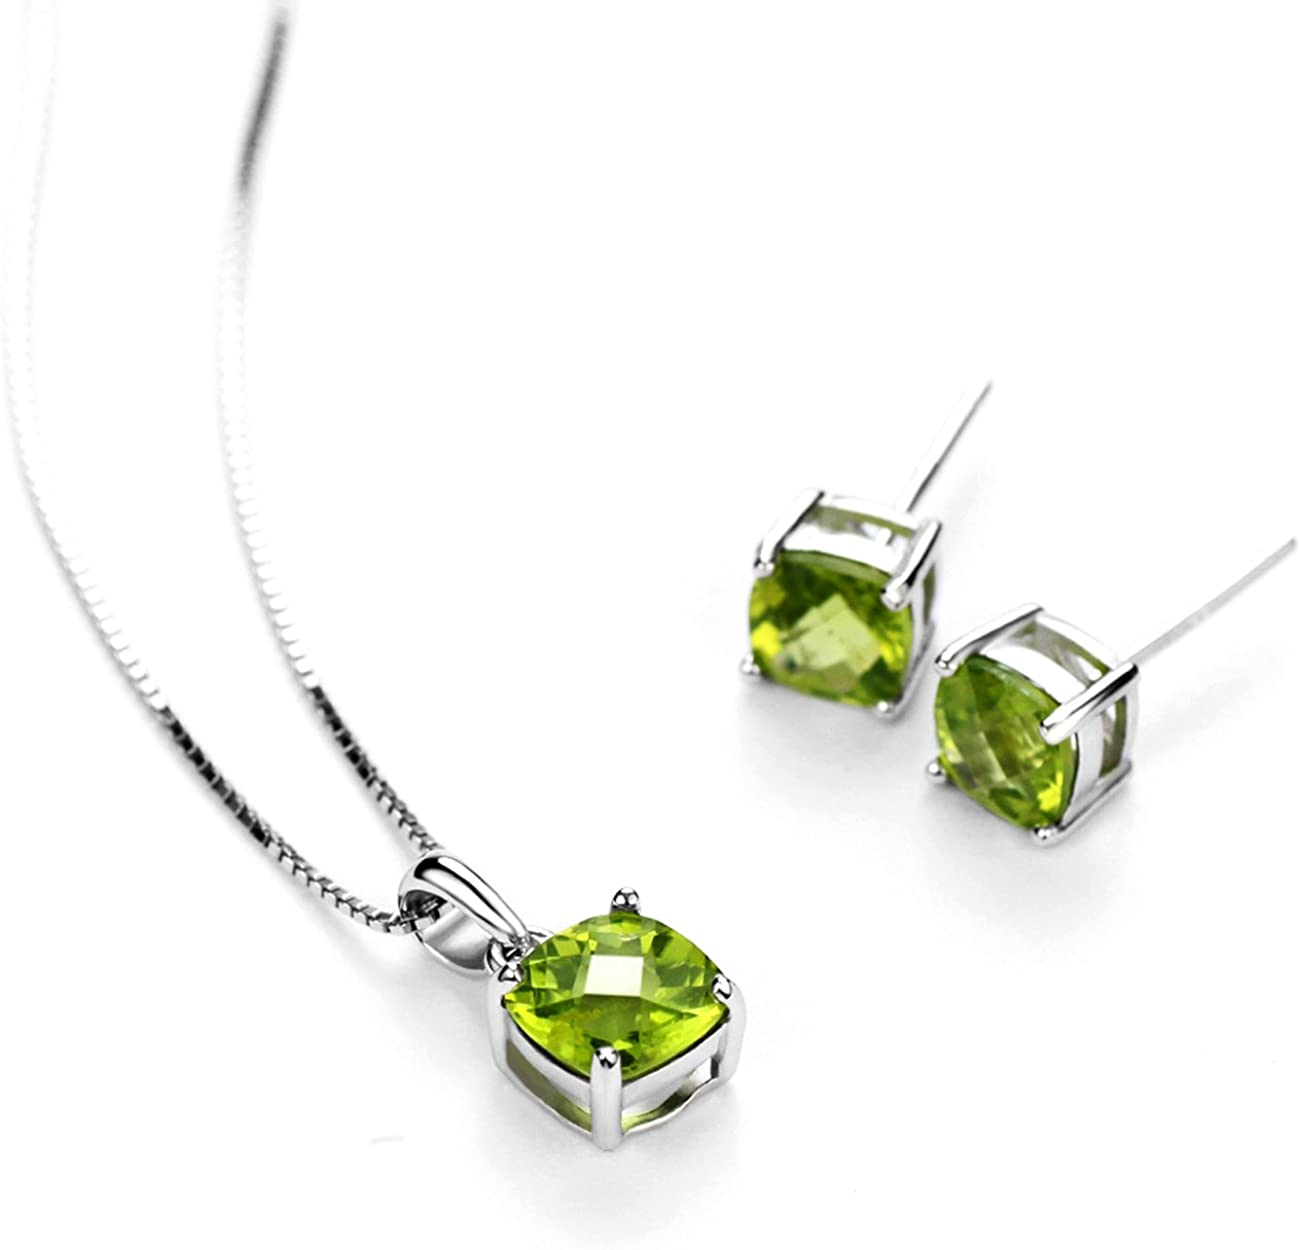 Earring 2.4 925 Sterling Silver  Peridot Gemstone Ethnic Jewelry Earring Anniversary Valentines Birthday Gift for Her